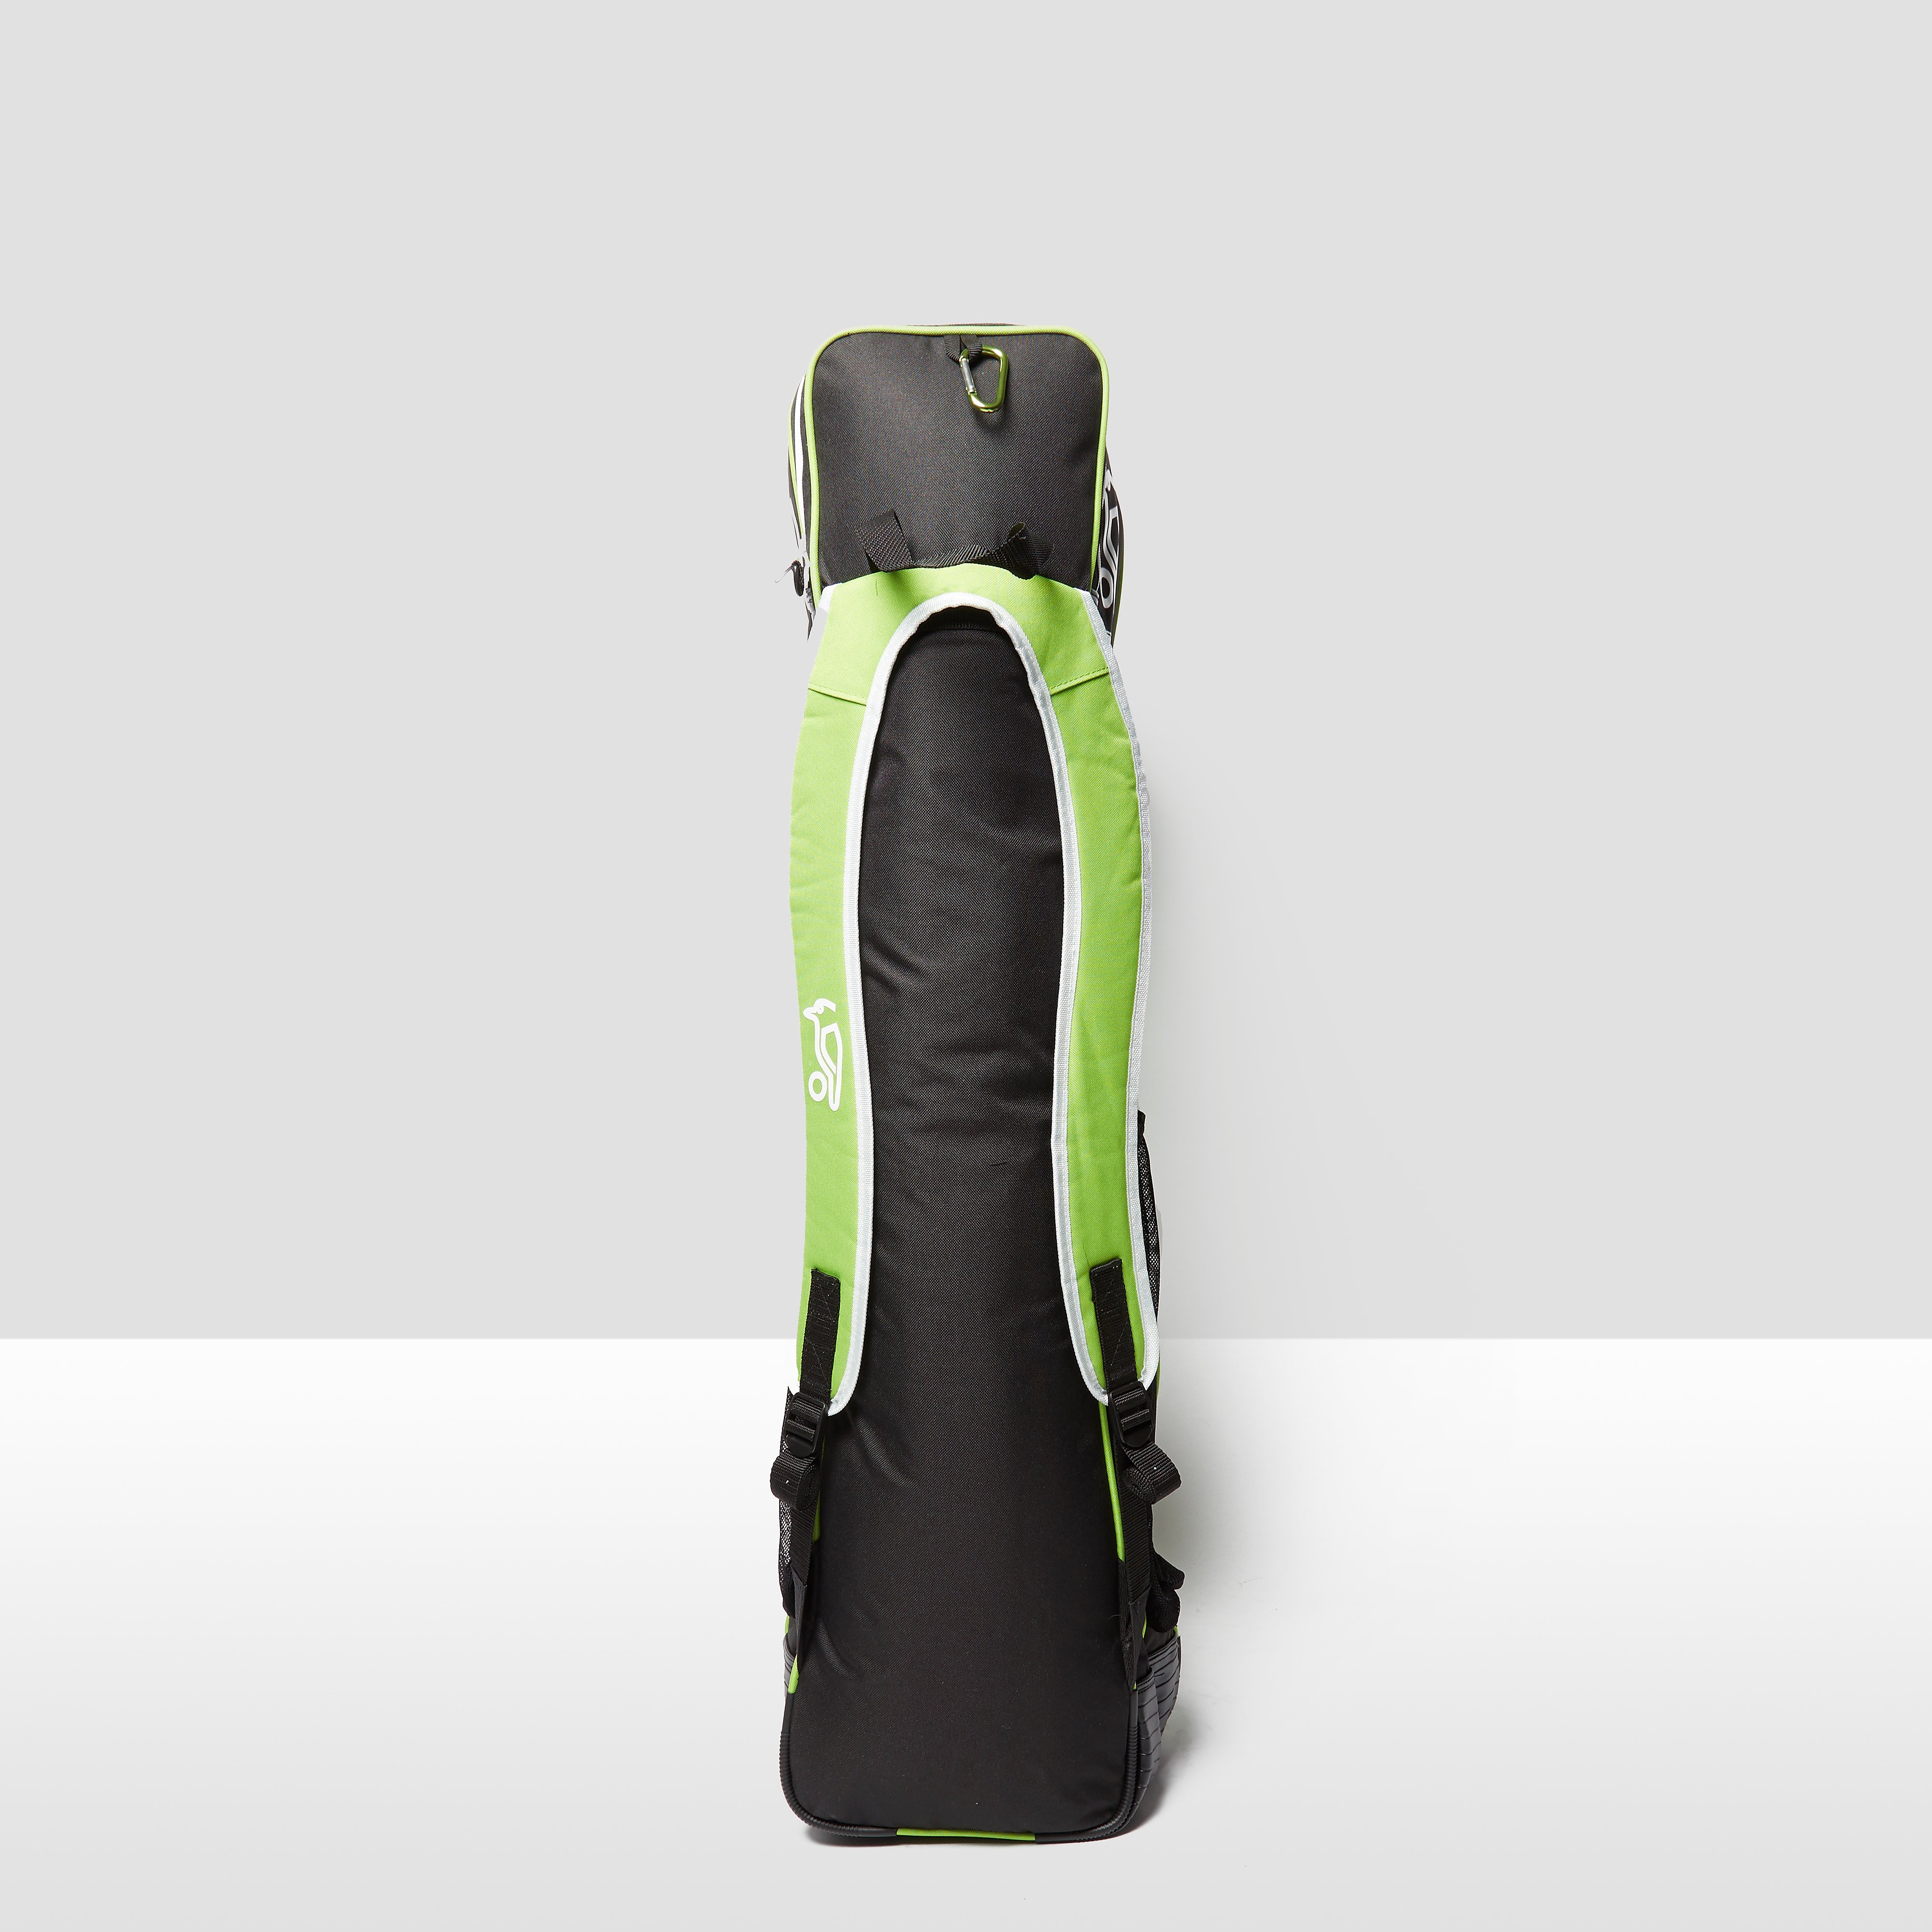 Kookaburra REBUKE Hockey STICK/KIT BAG